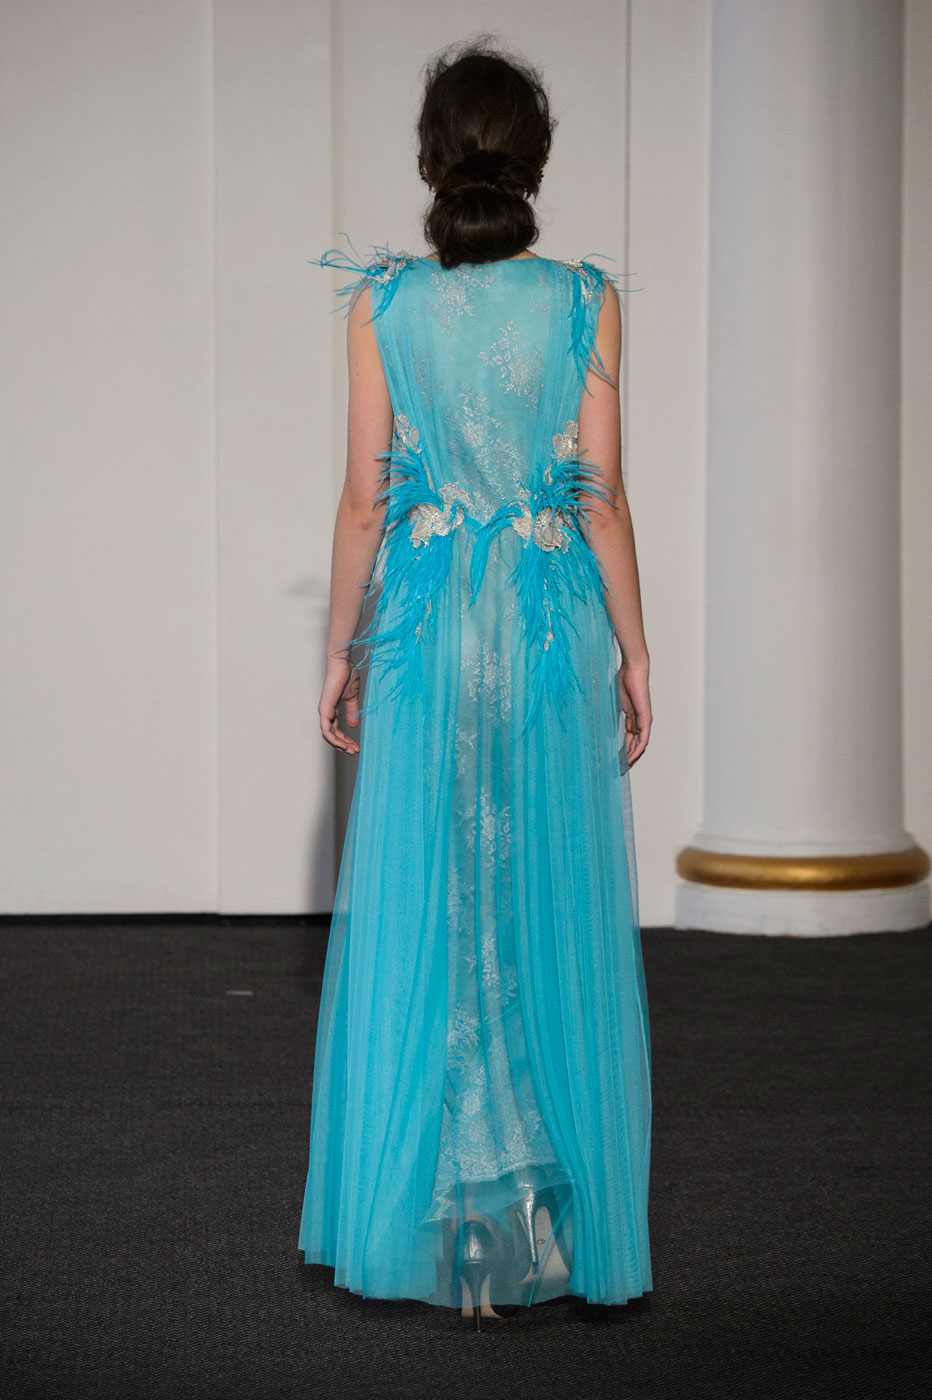 Busardi-fashion-runway-show-haute-couture-paris-spring-2015-the-impression-54